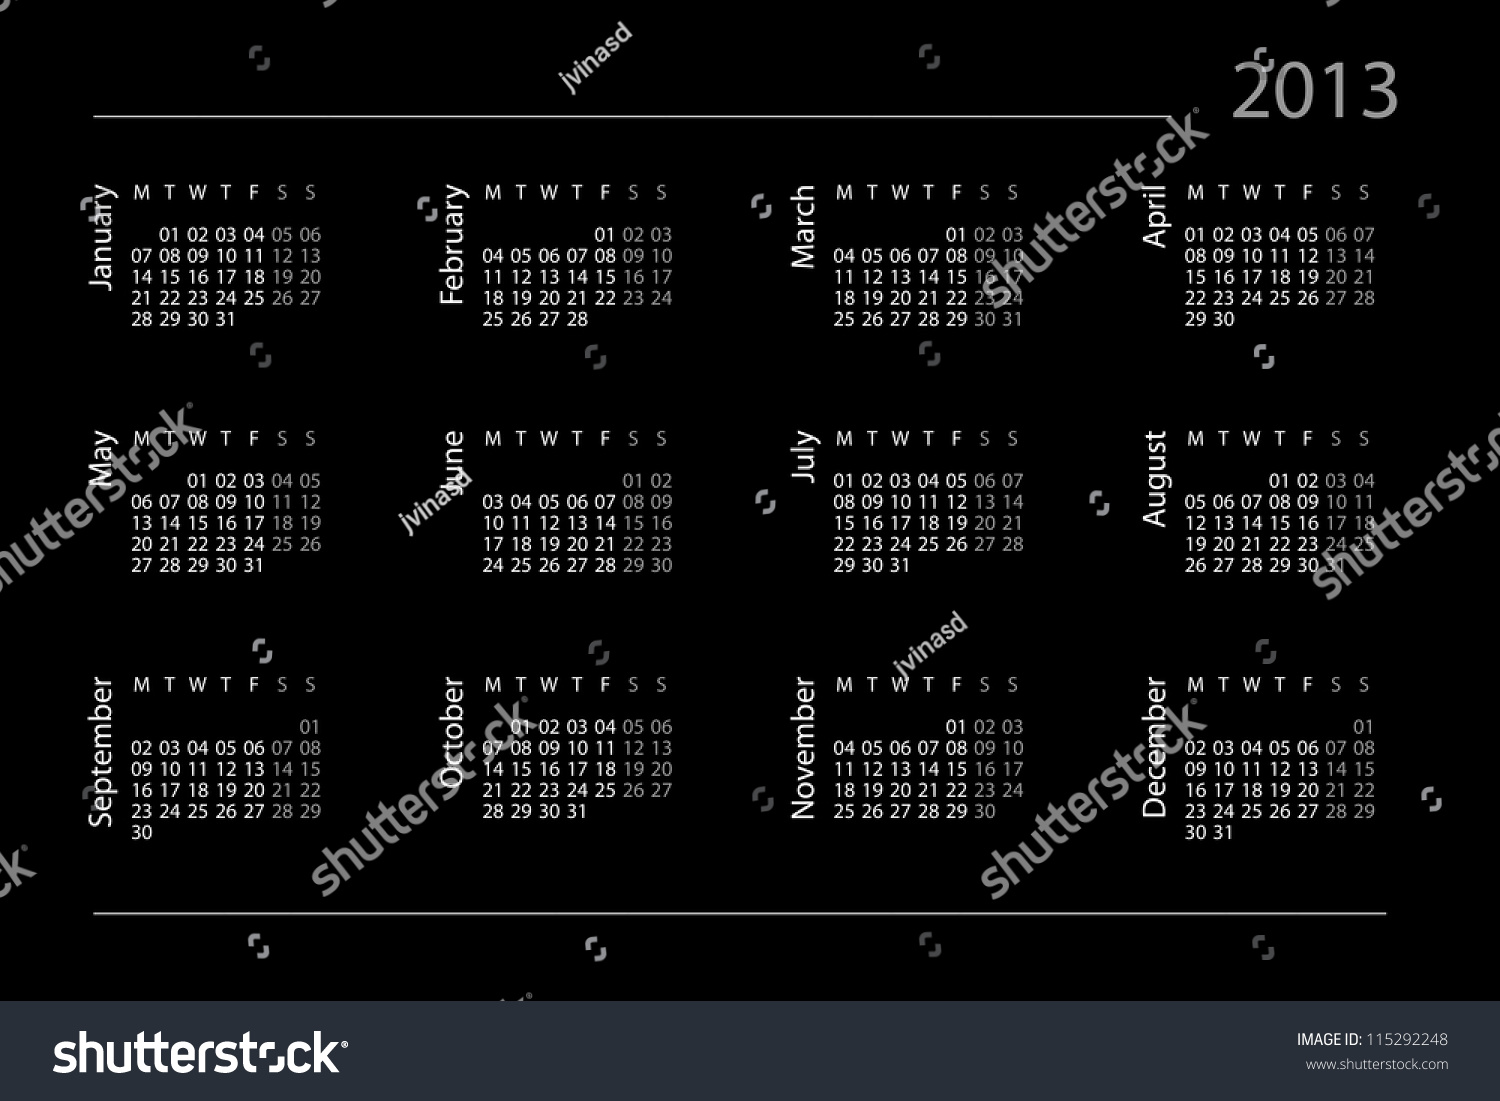 Pcb Schedule For Year 2013 Calendar For Year 2013 Stock